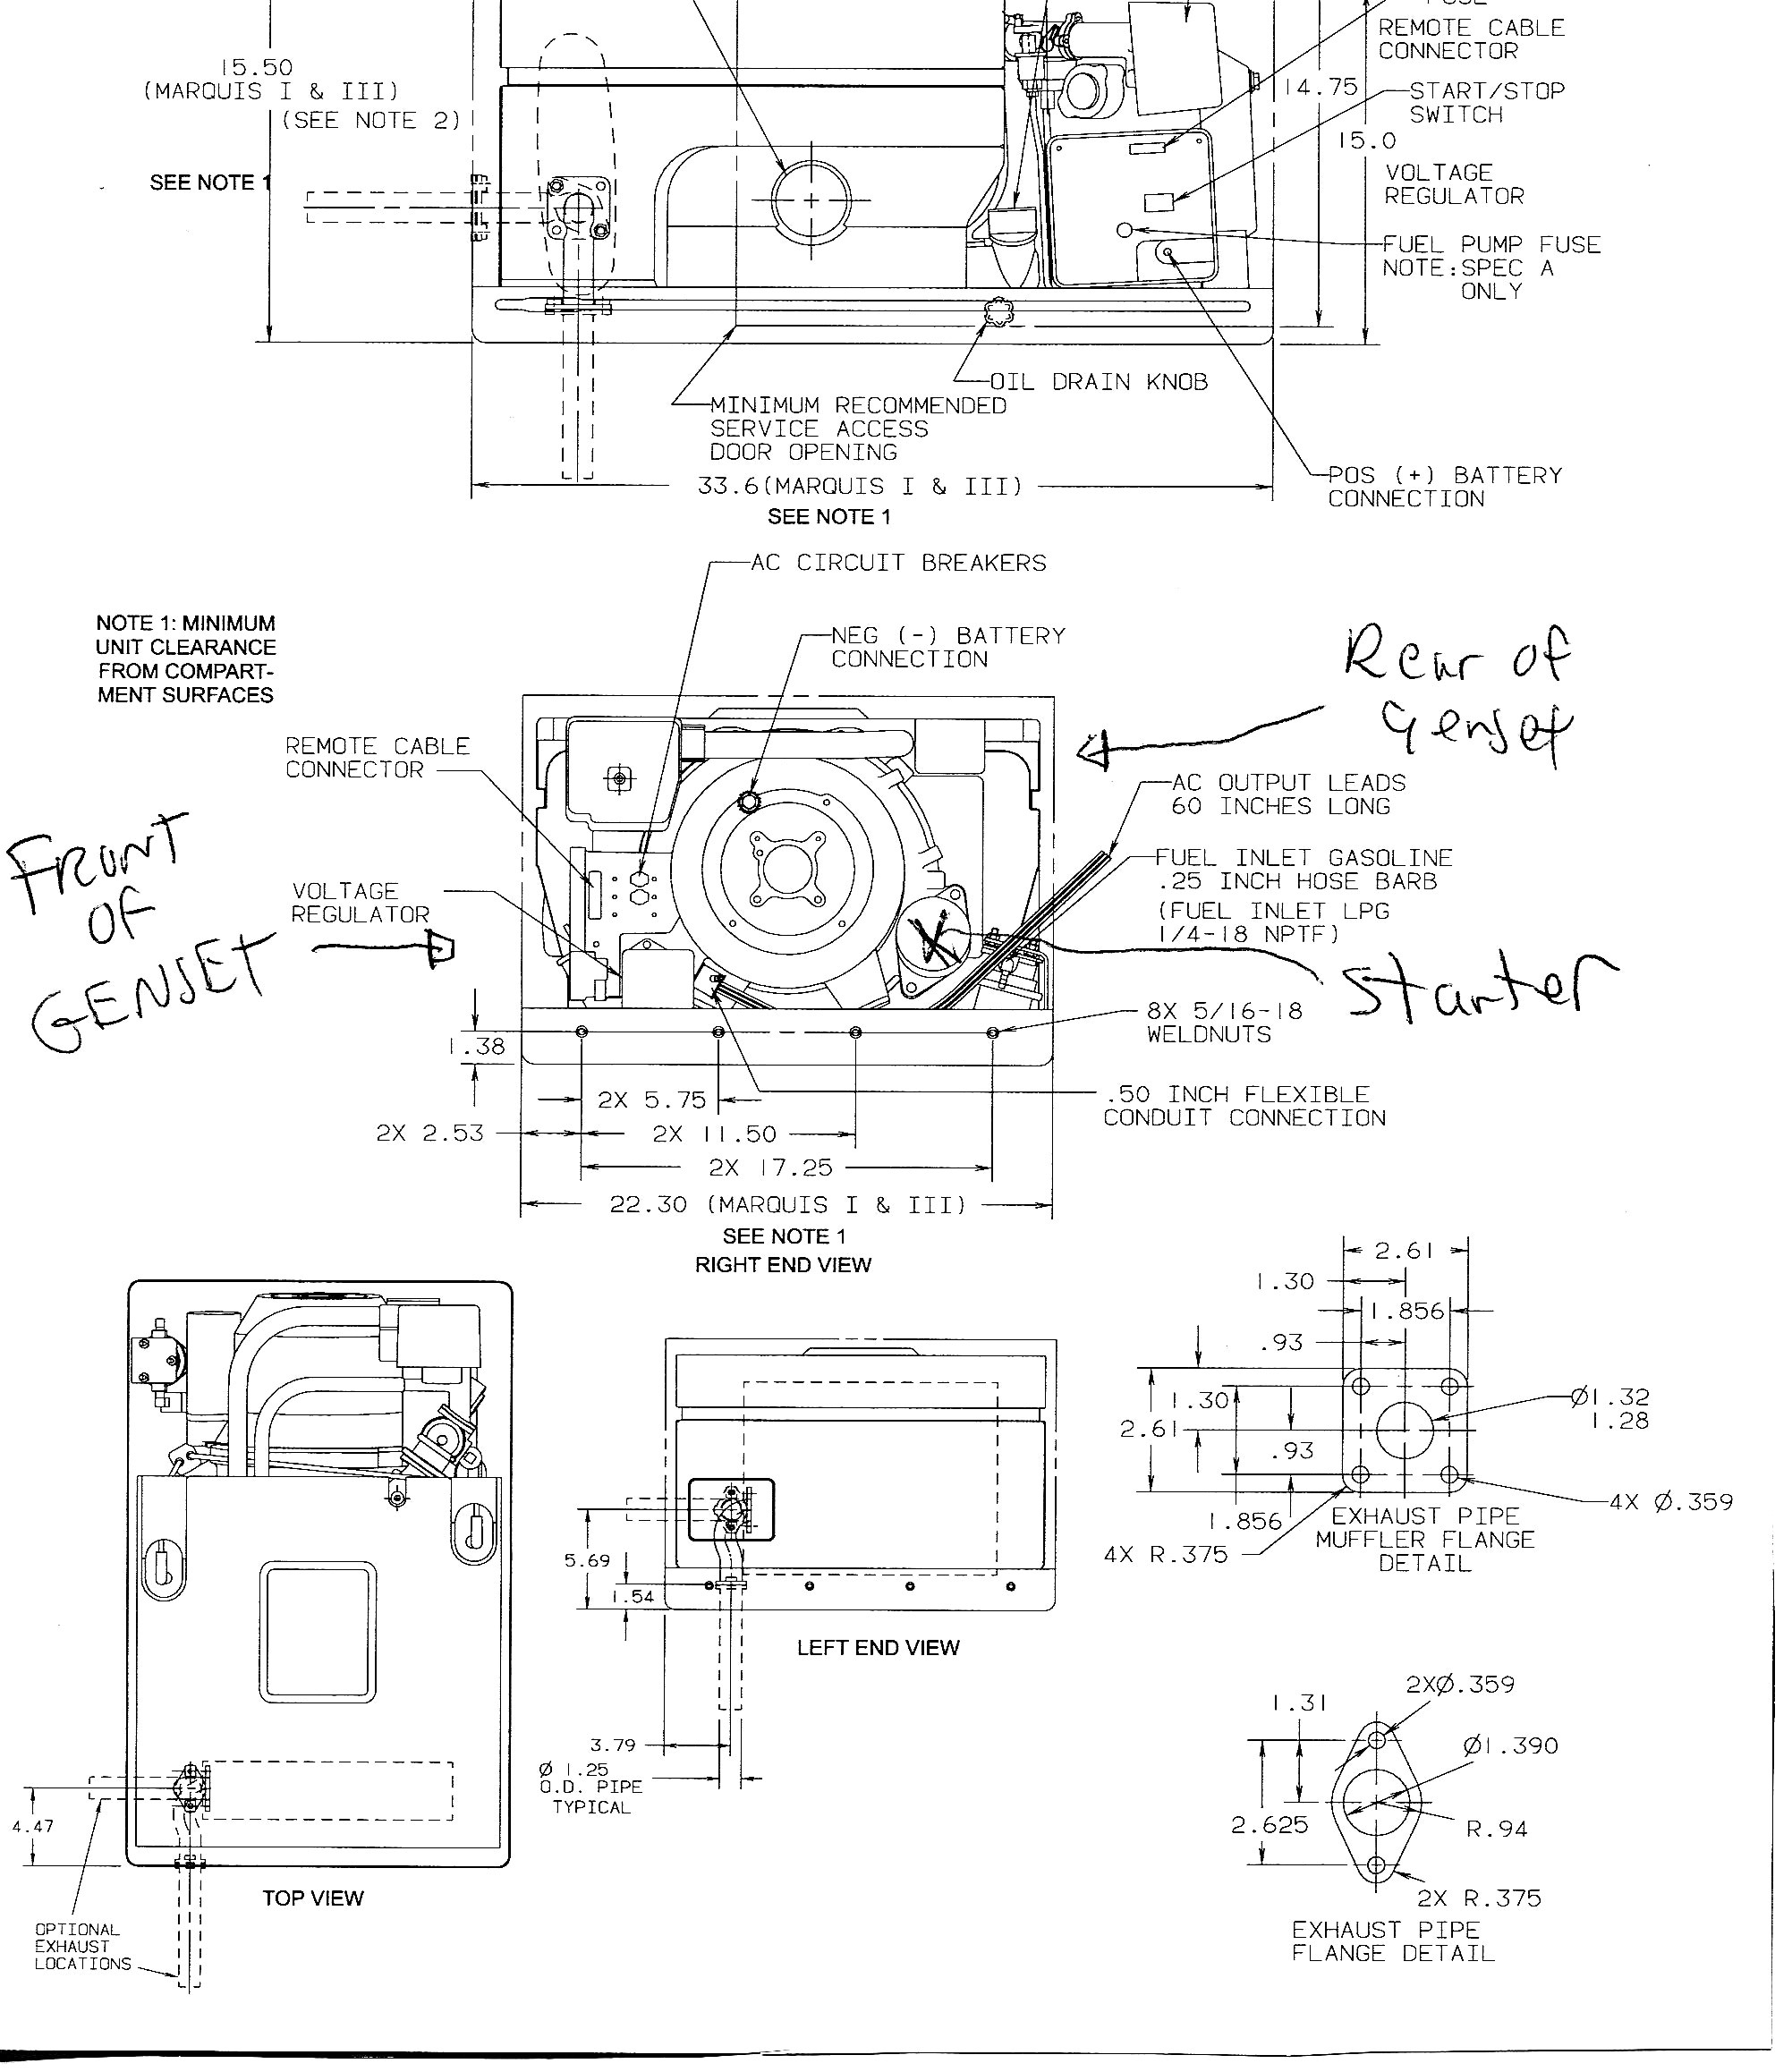 Onan Generator Wiring Diagram 4000 - Wiring Diagram Features